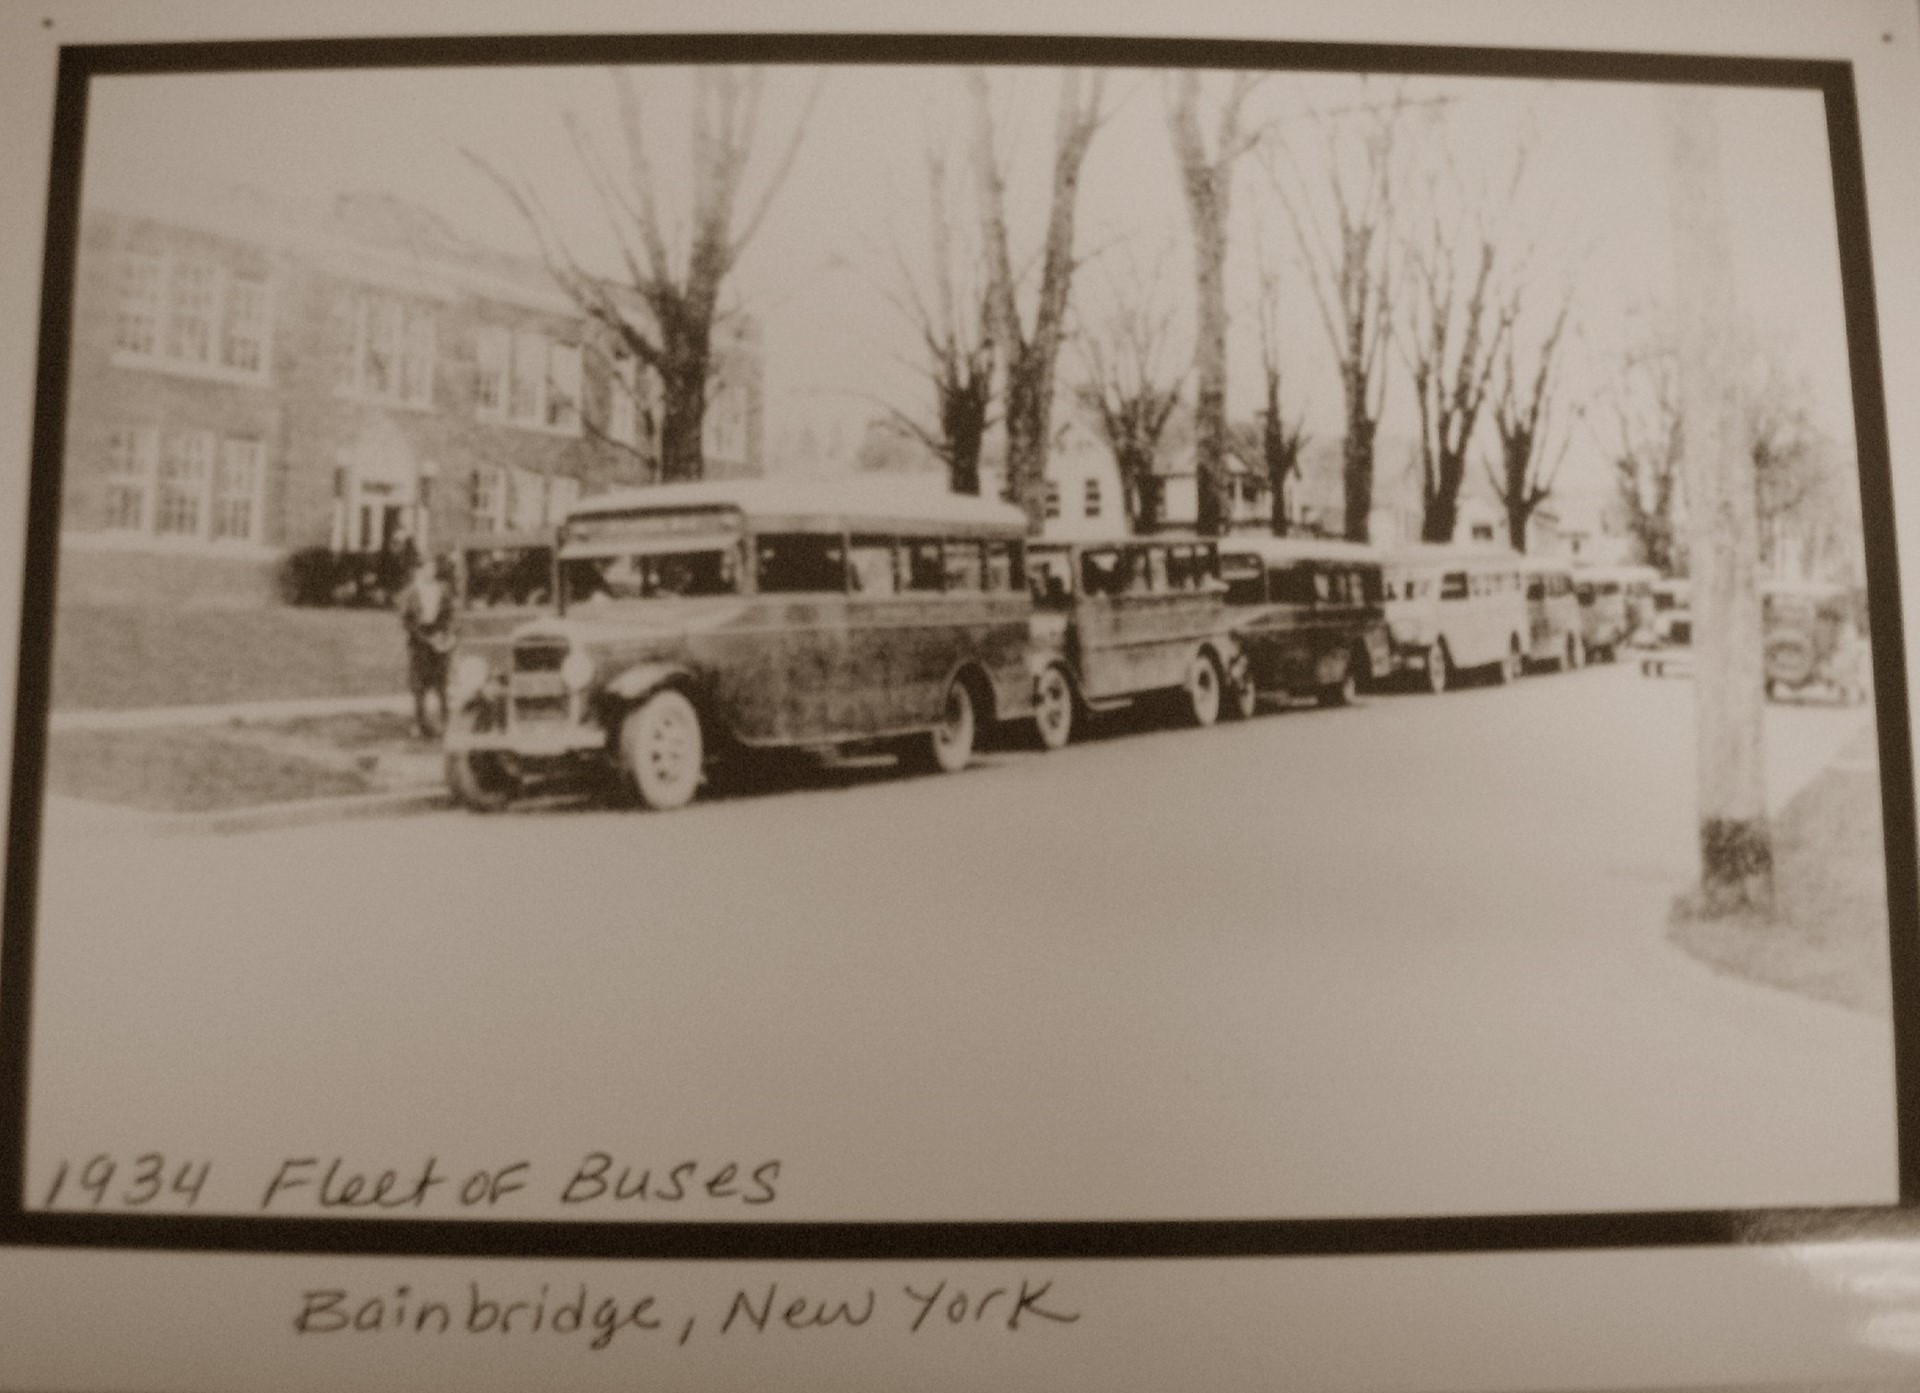 Fleet of Buses - 1934